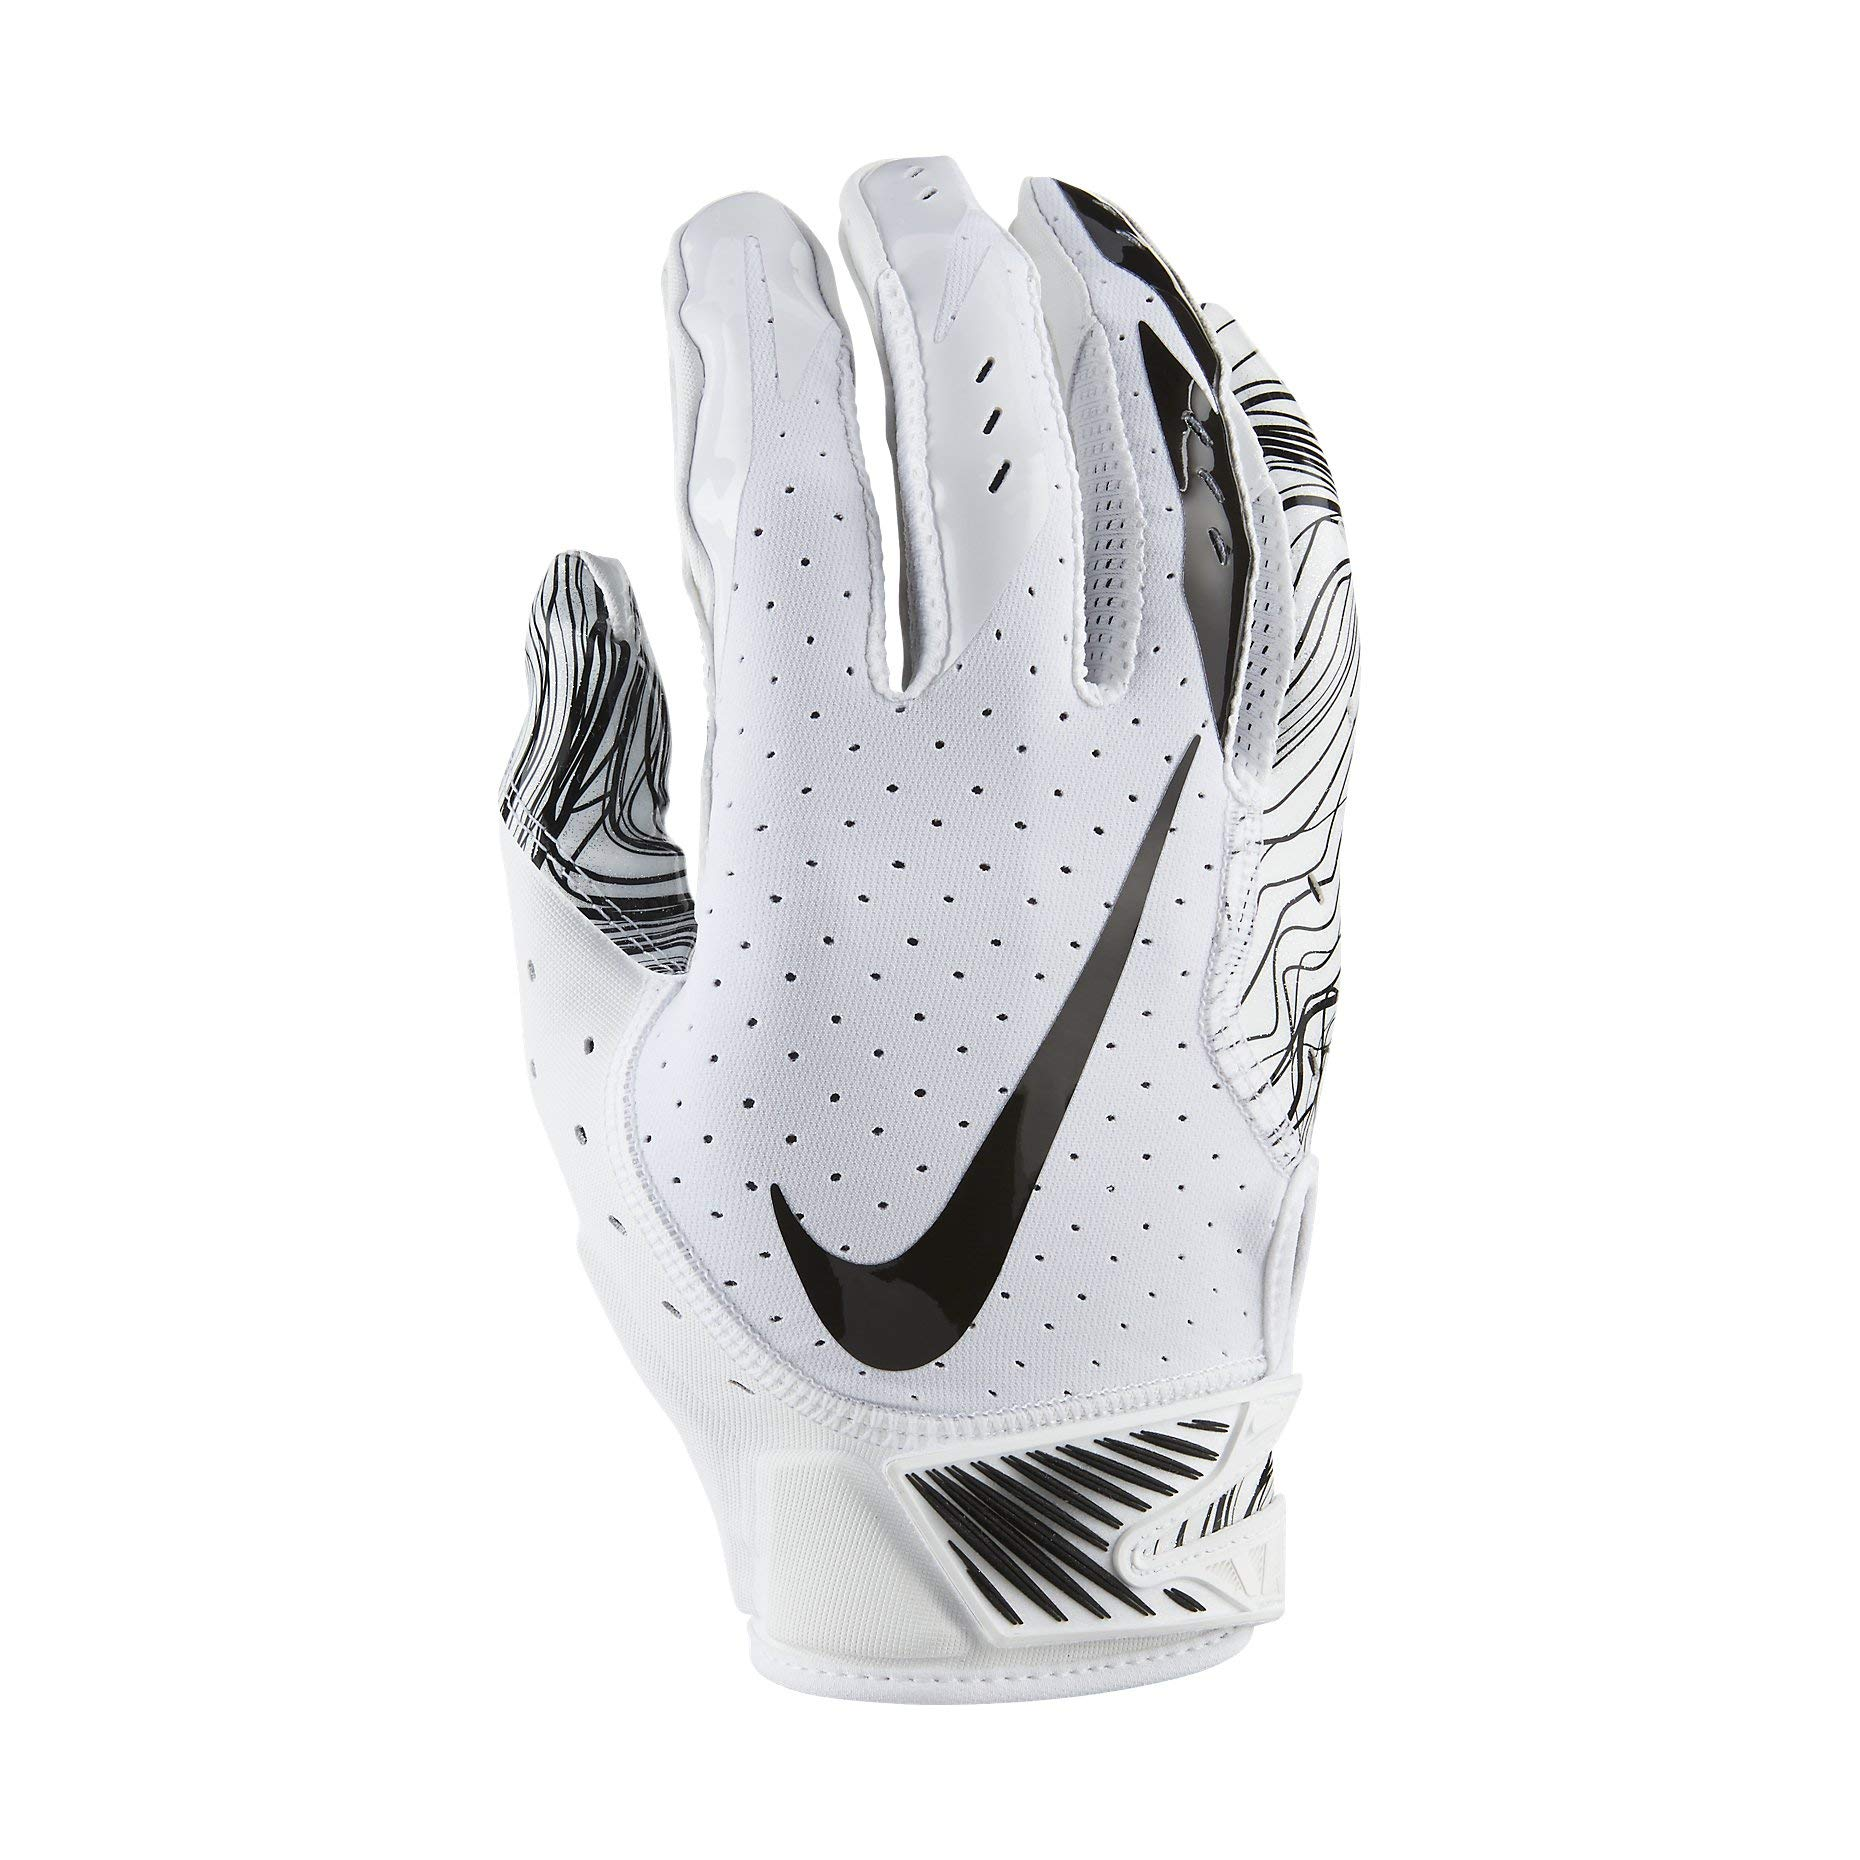 Nike Adult Vapor Jet 5.0 Receiver Gloves 2018 (White/Black, Small)